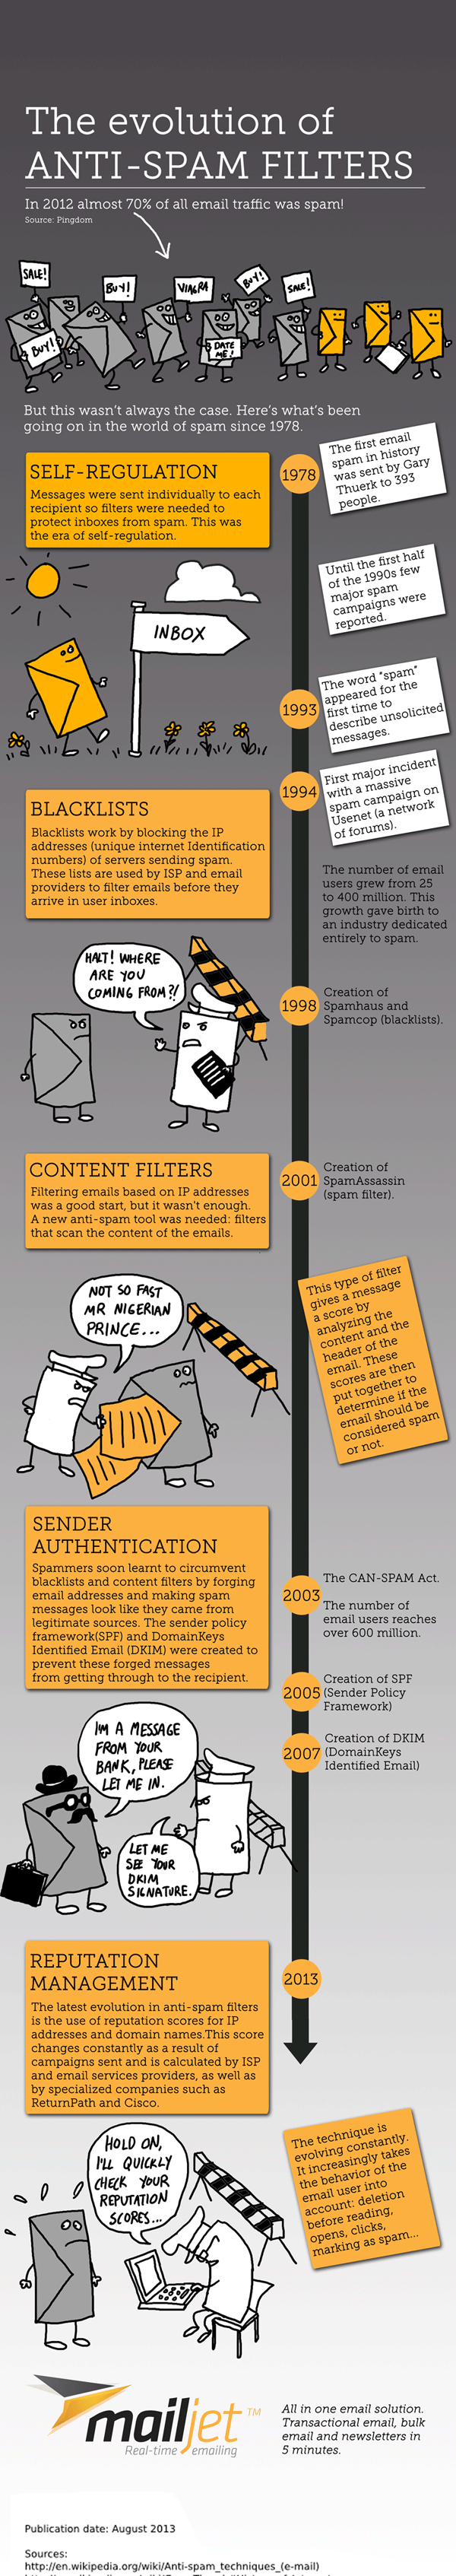 Evolution of spam filters infographic by Businessillustrator.com